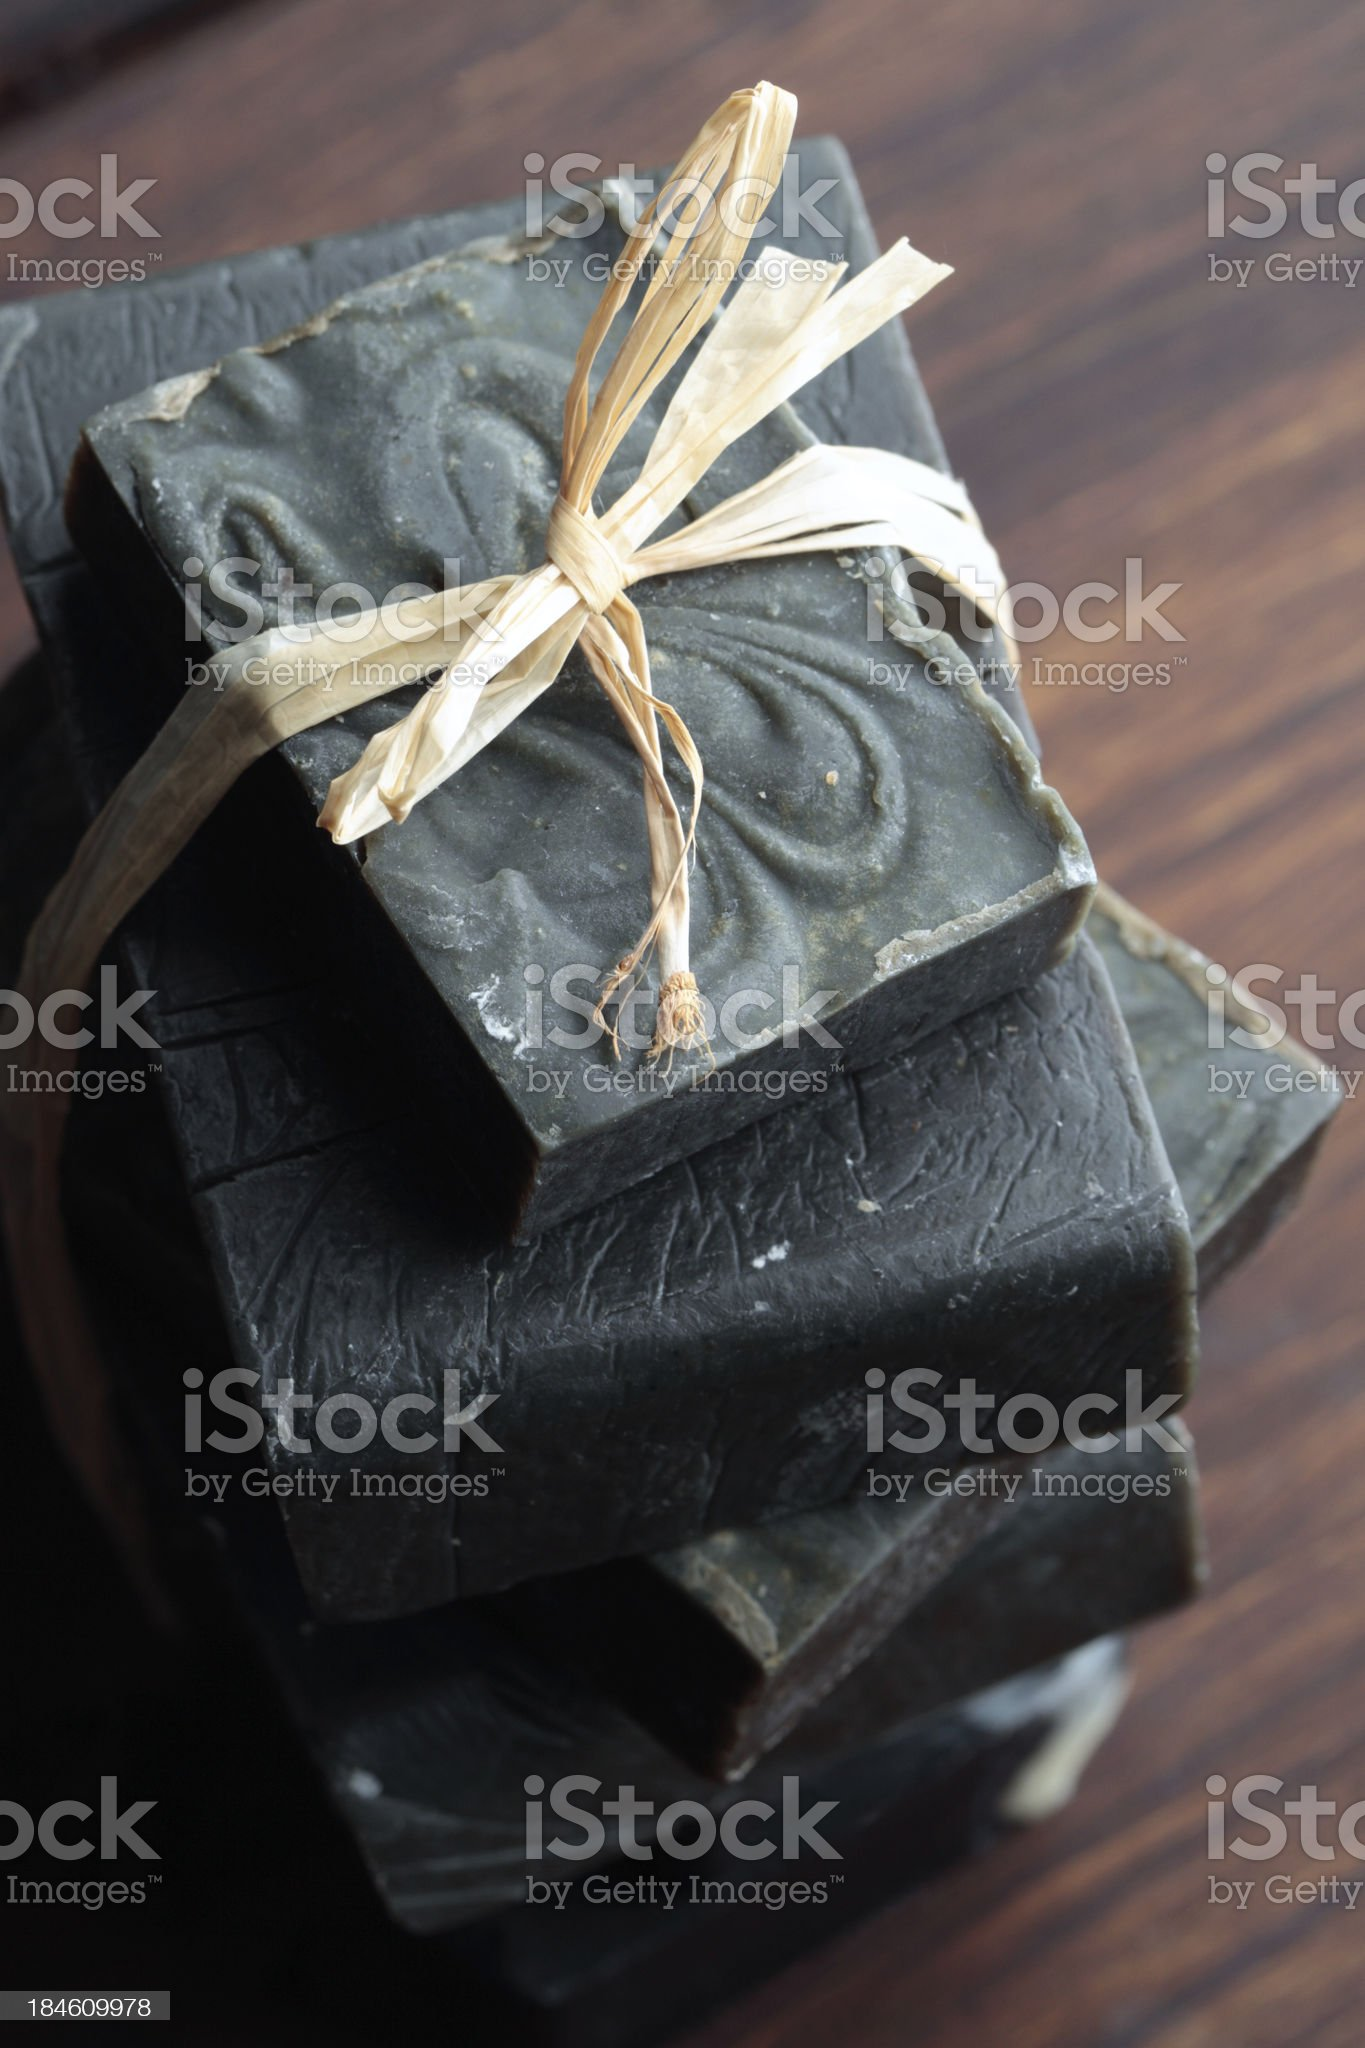 soap stack royalty-free stock photo